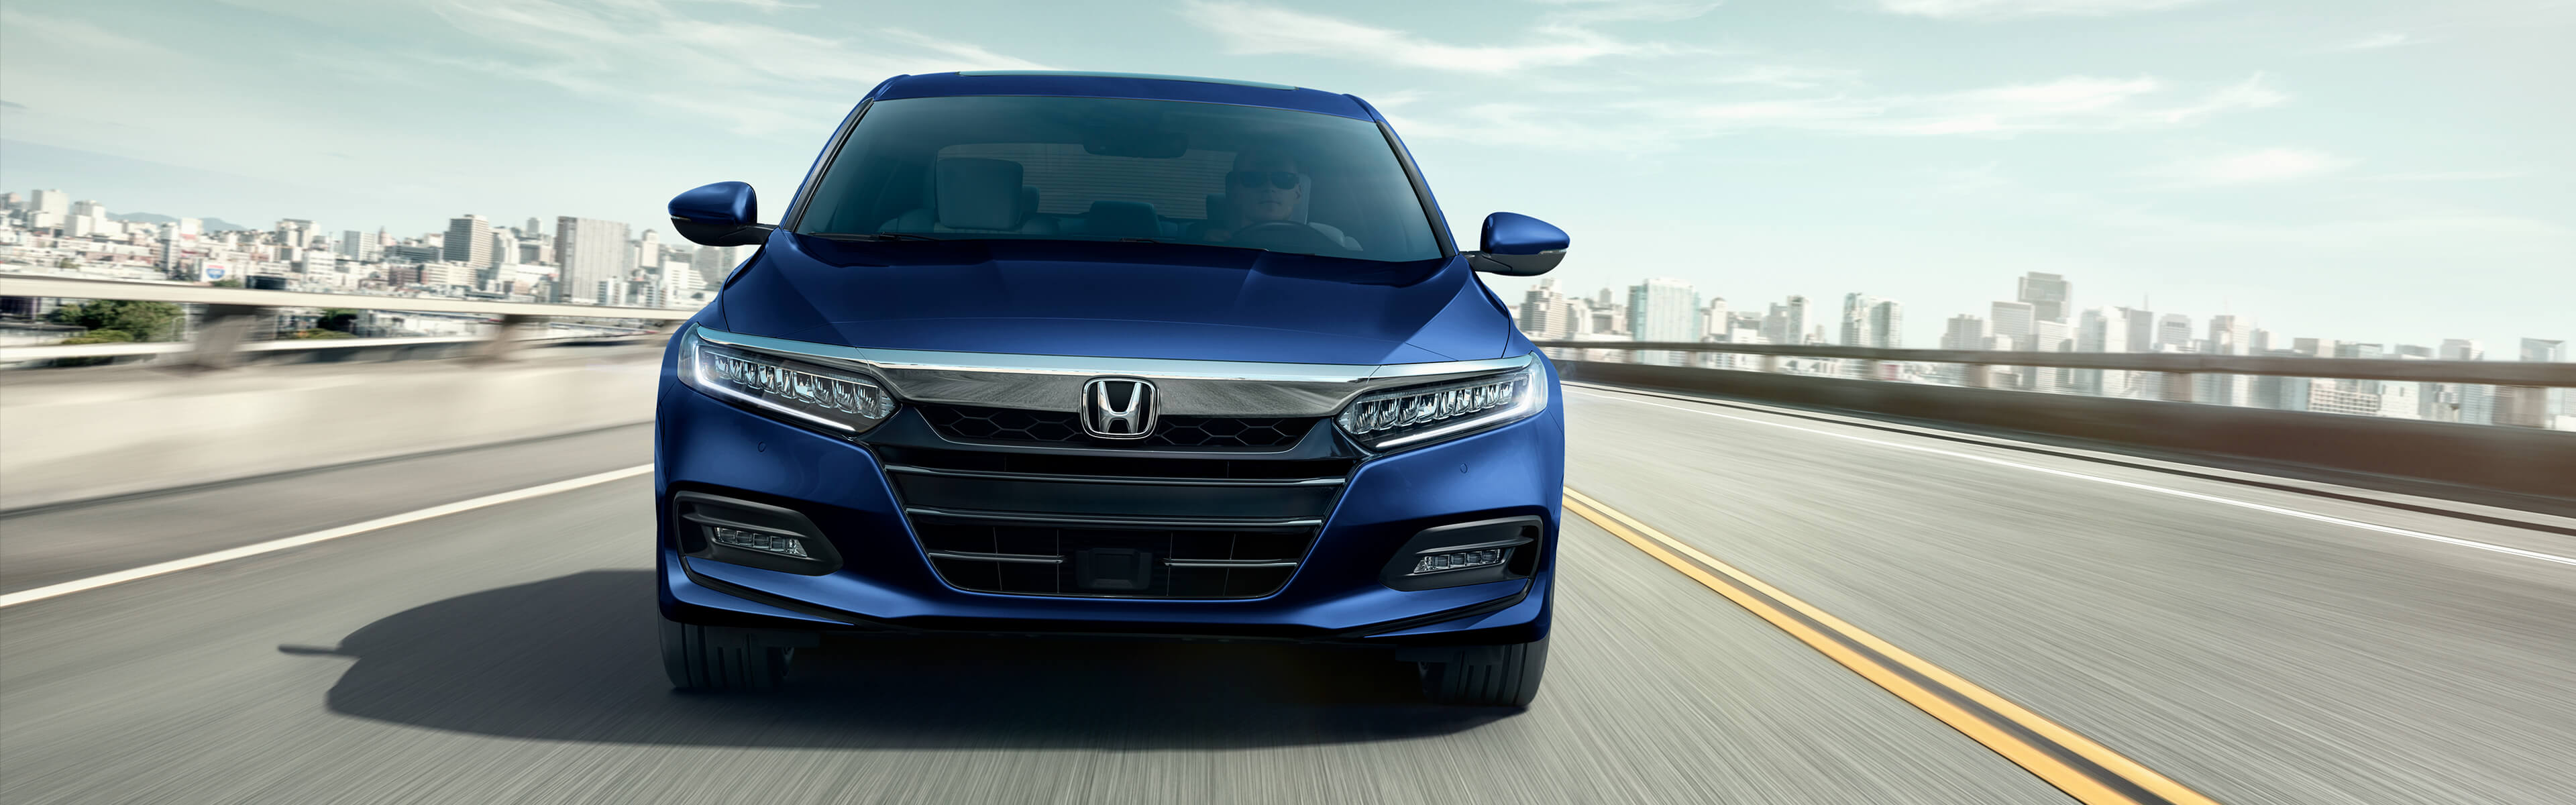 Image of 2020 Honda Accord Sedan on highway.